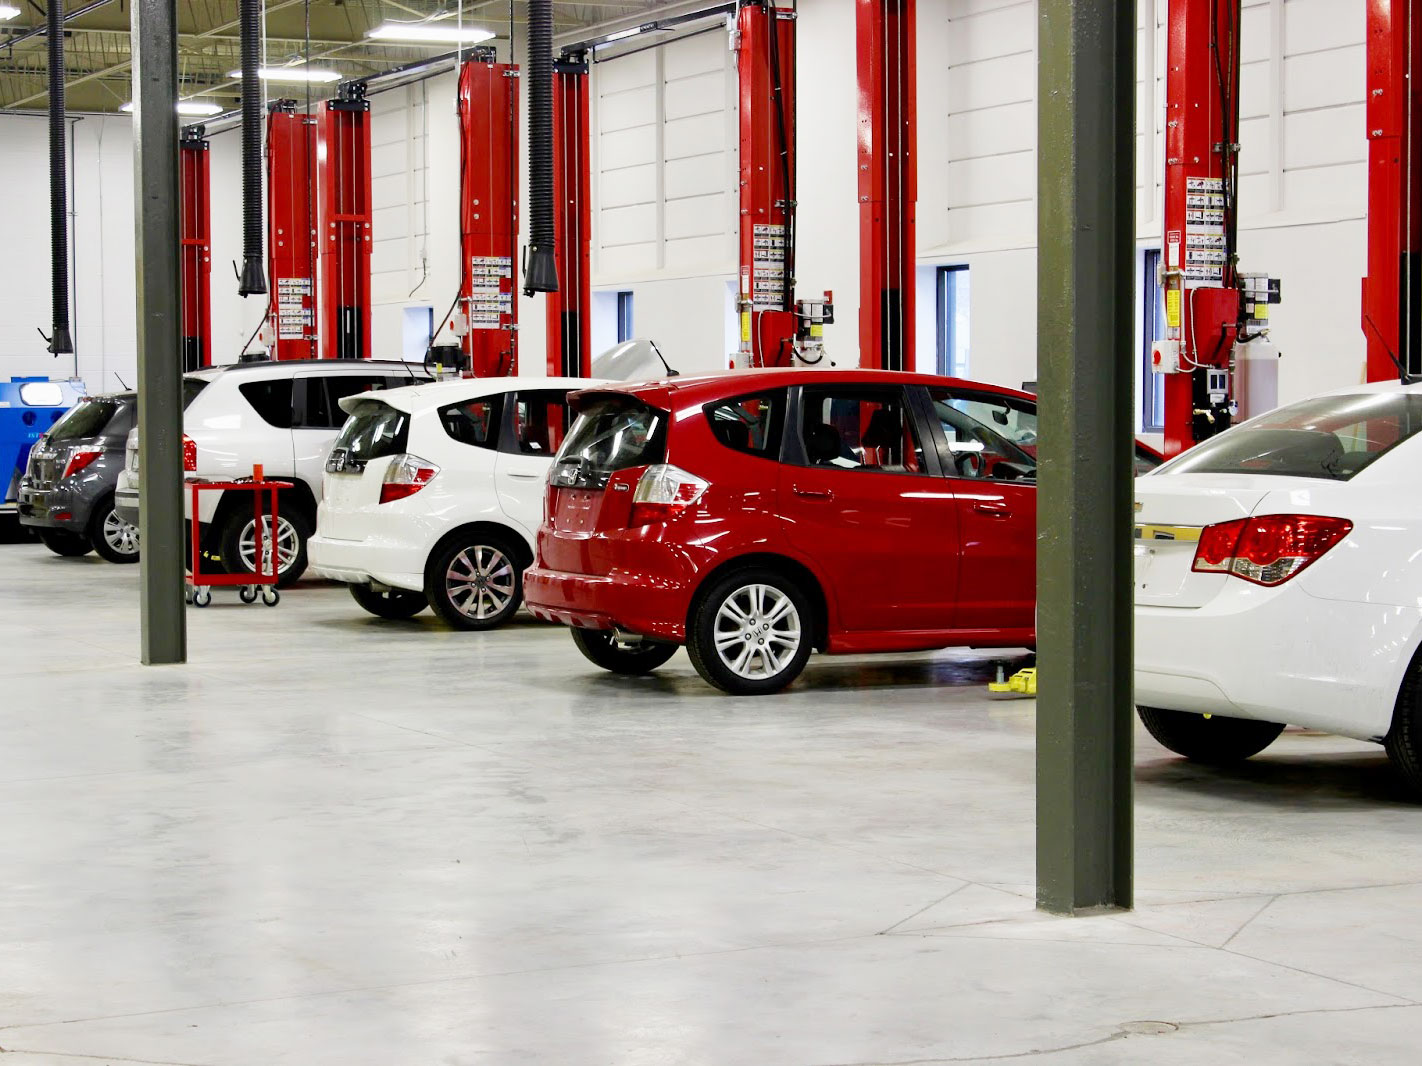 a garage with white and red cars in the parking